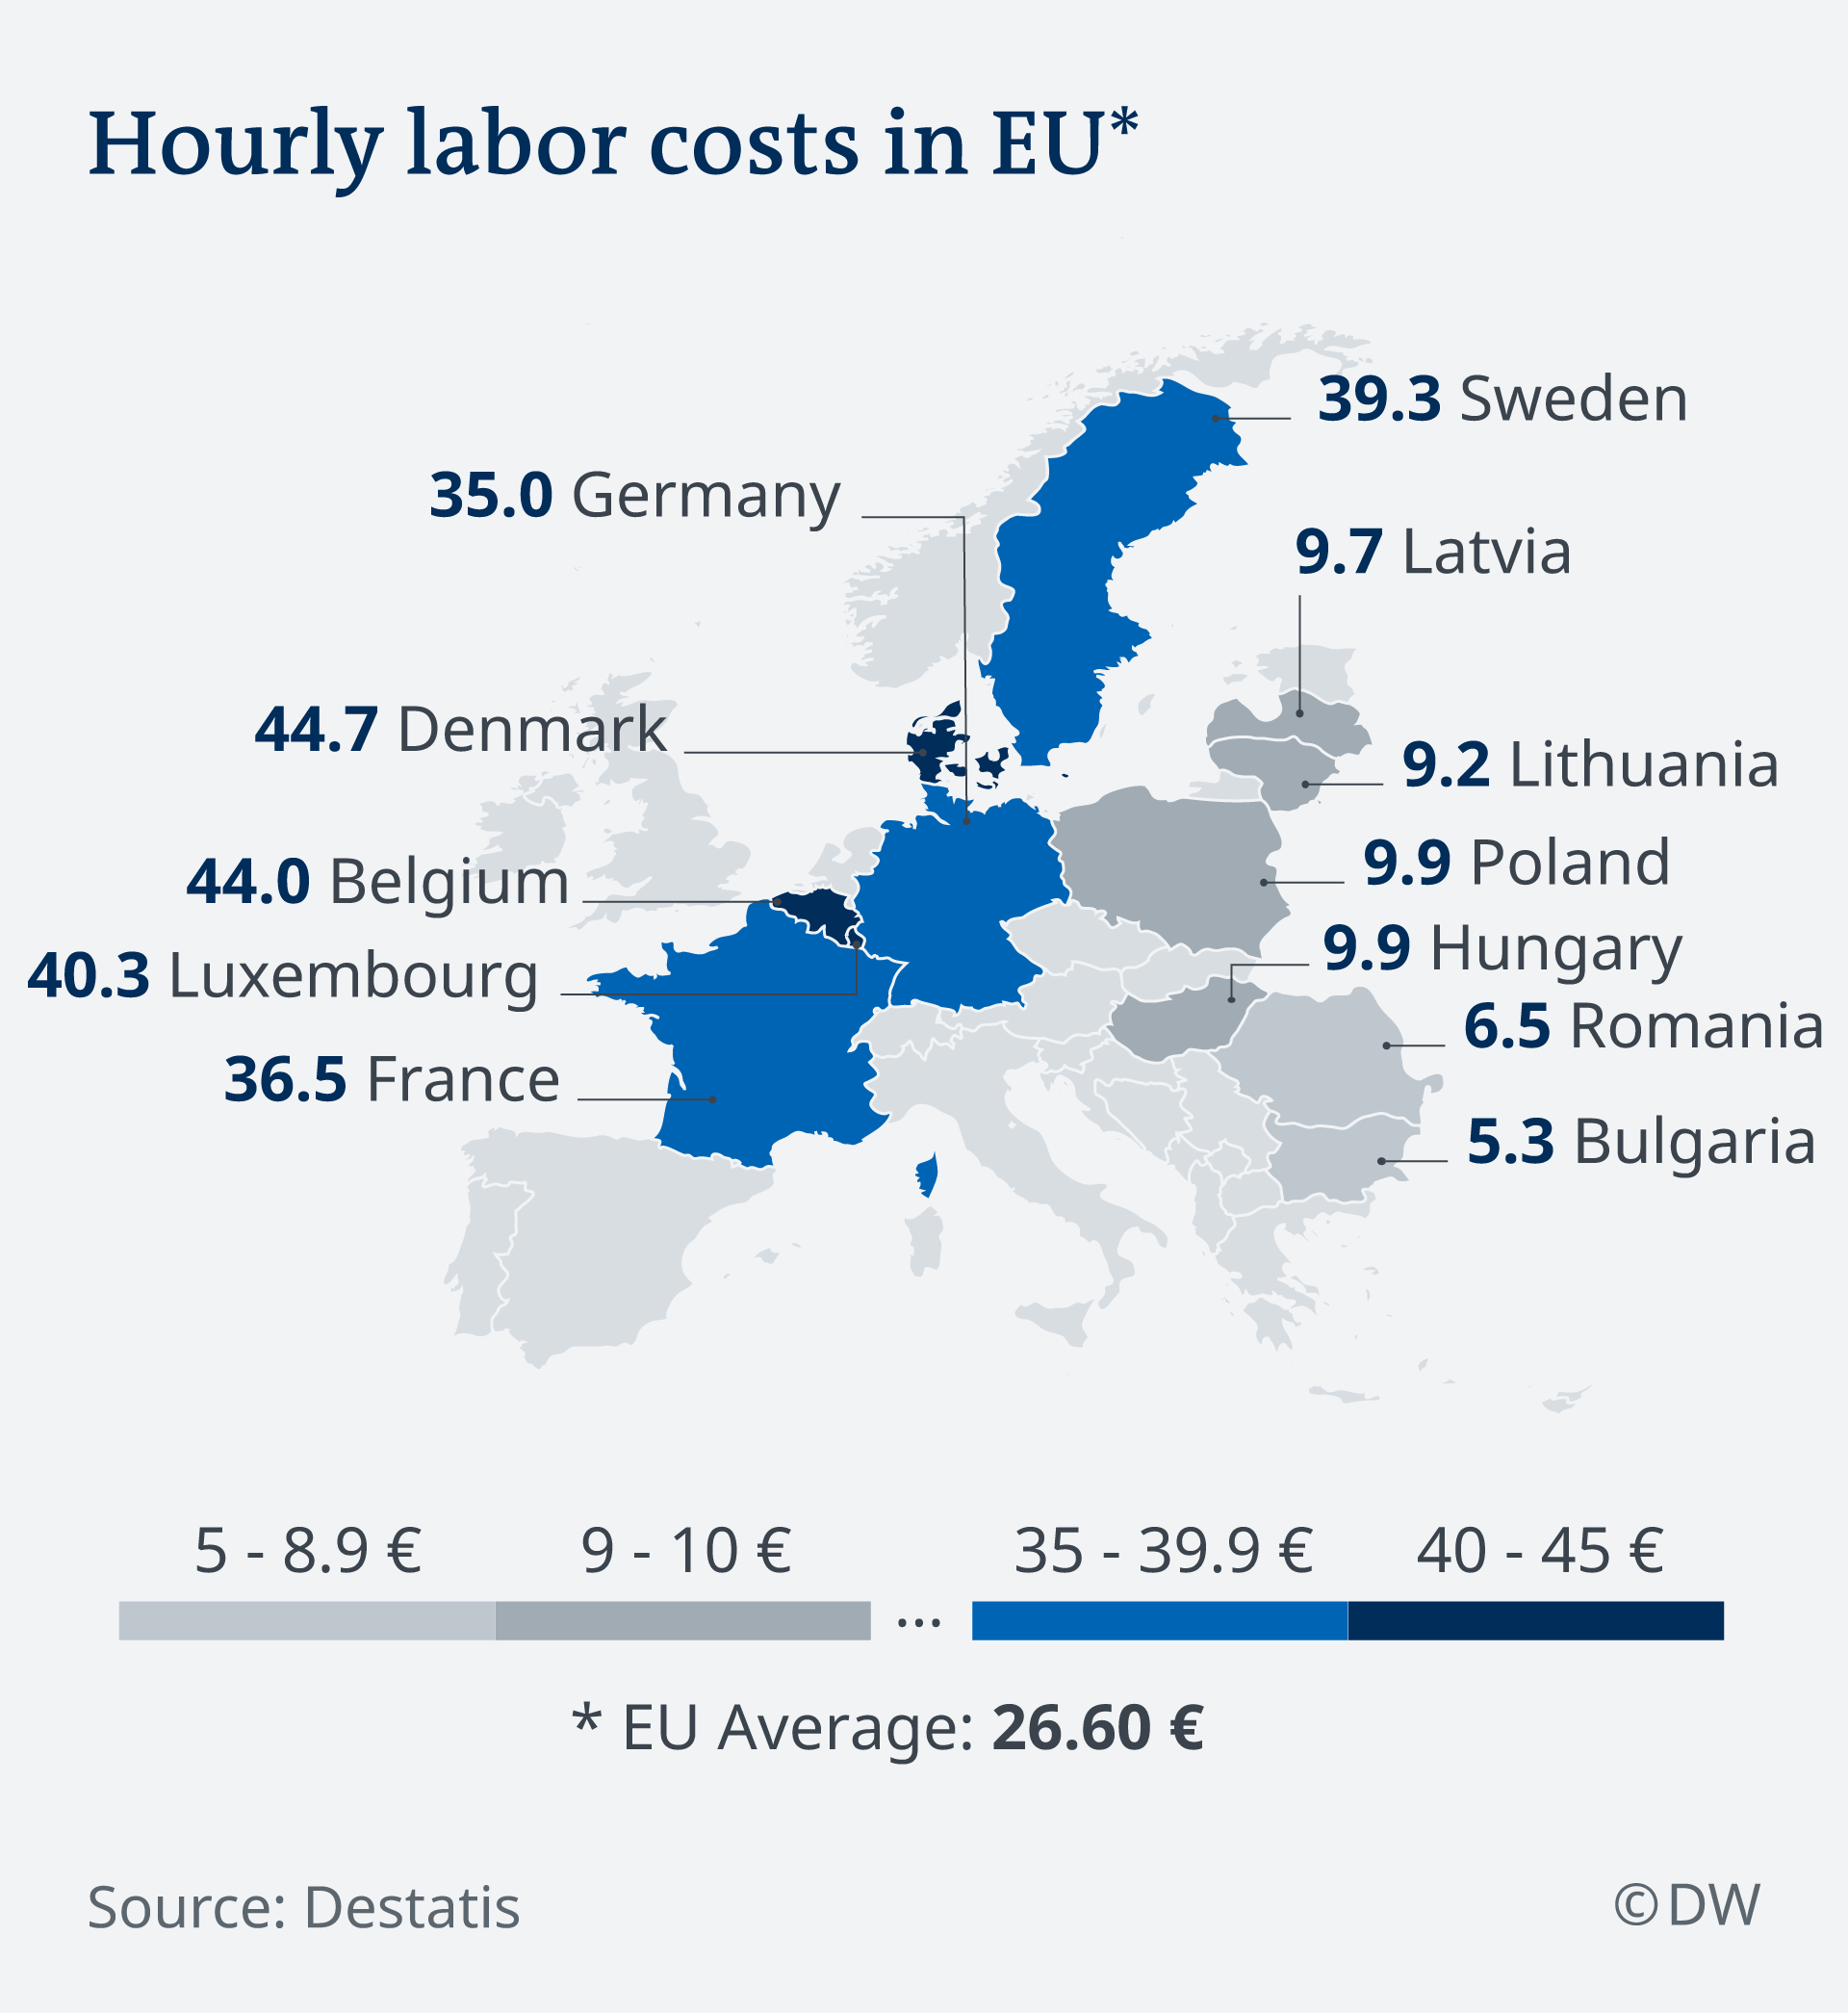 Map showing hourly labor costs in top- and bottom-tier countries